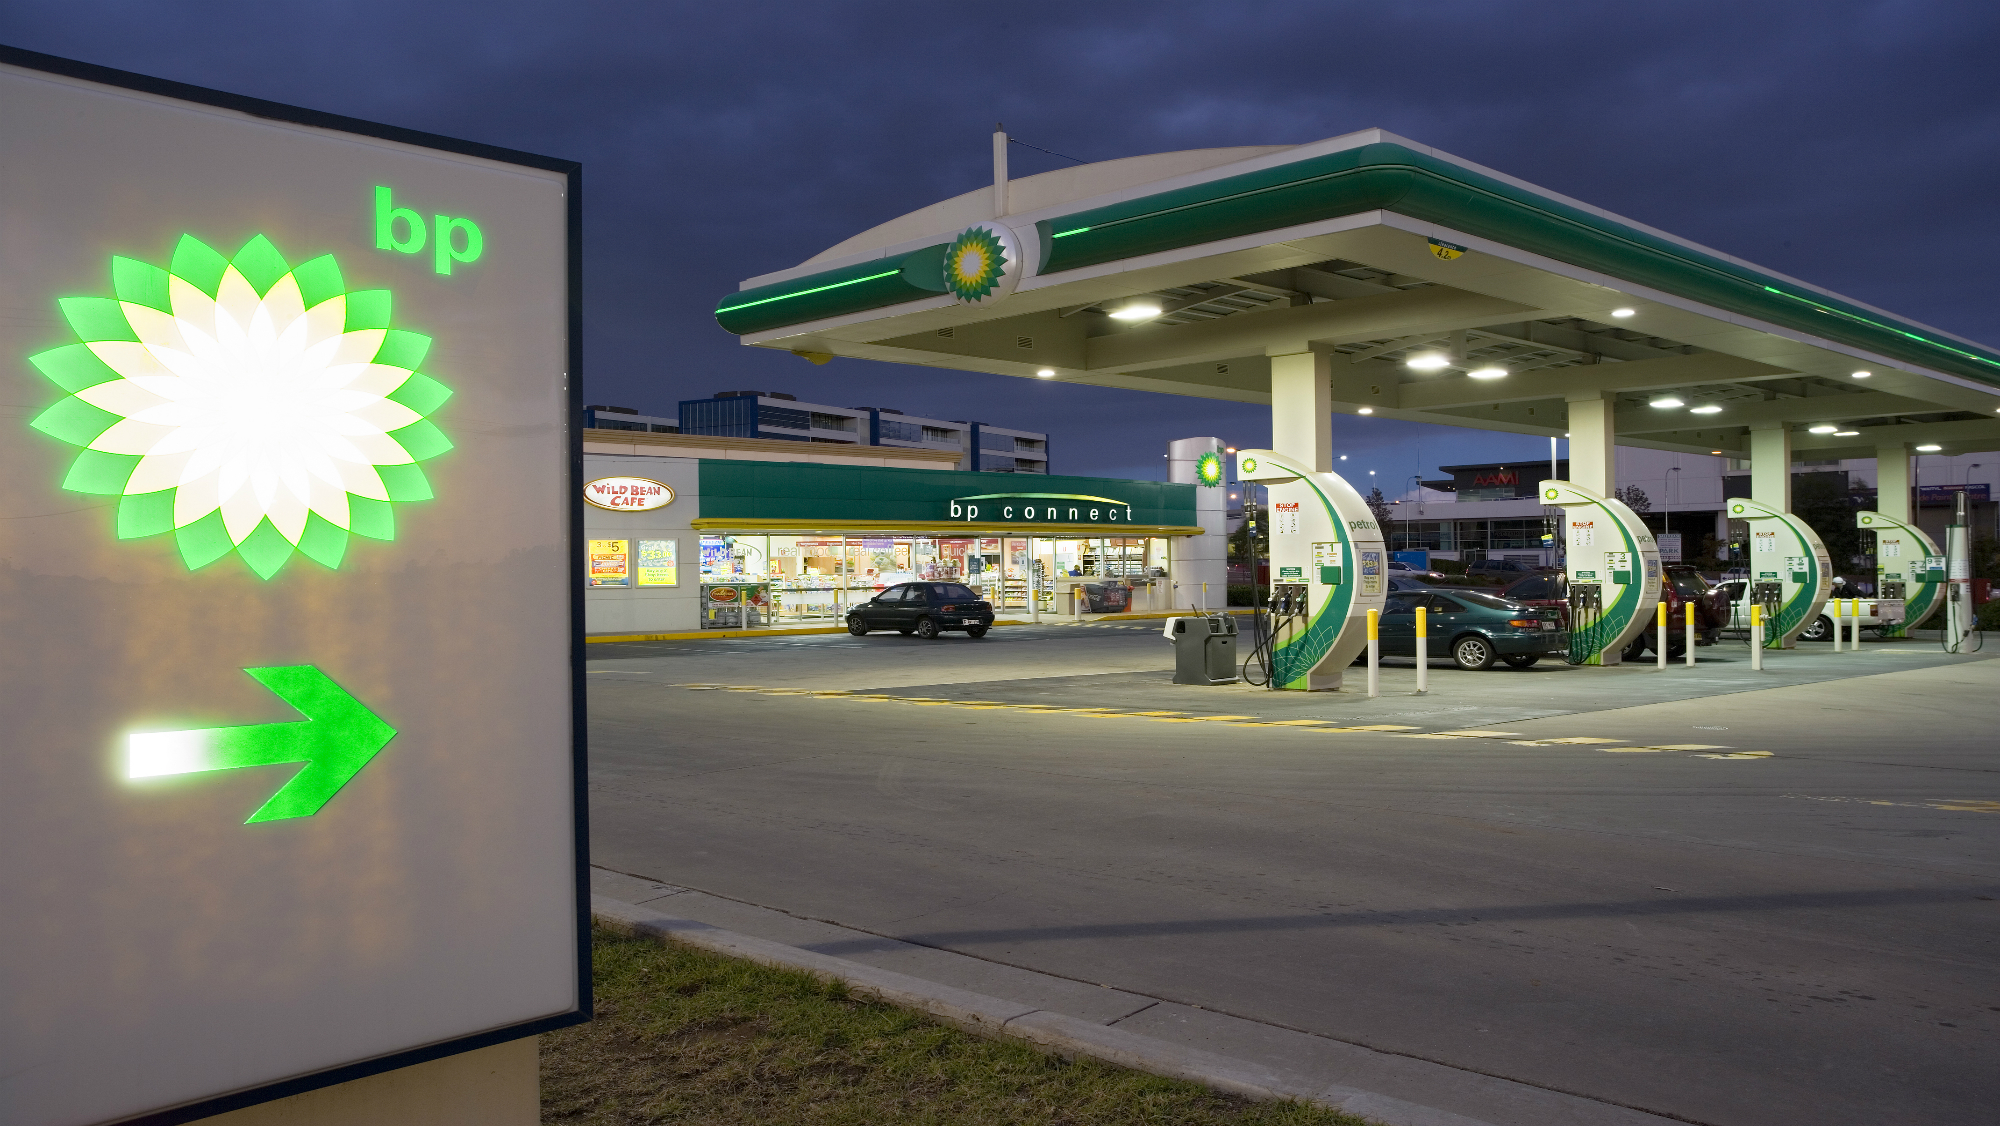 Become-a-BP-Service-Station-Main-Image.jpg